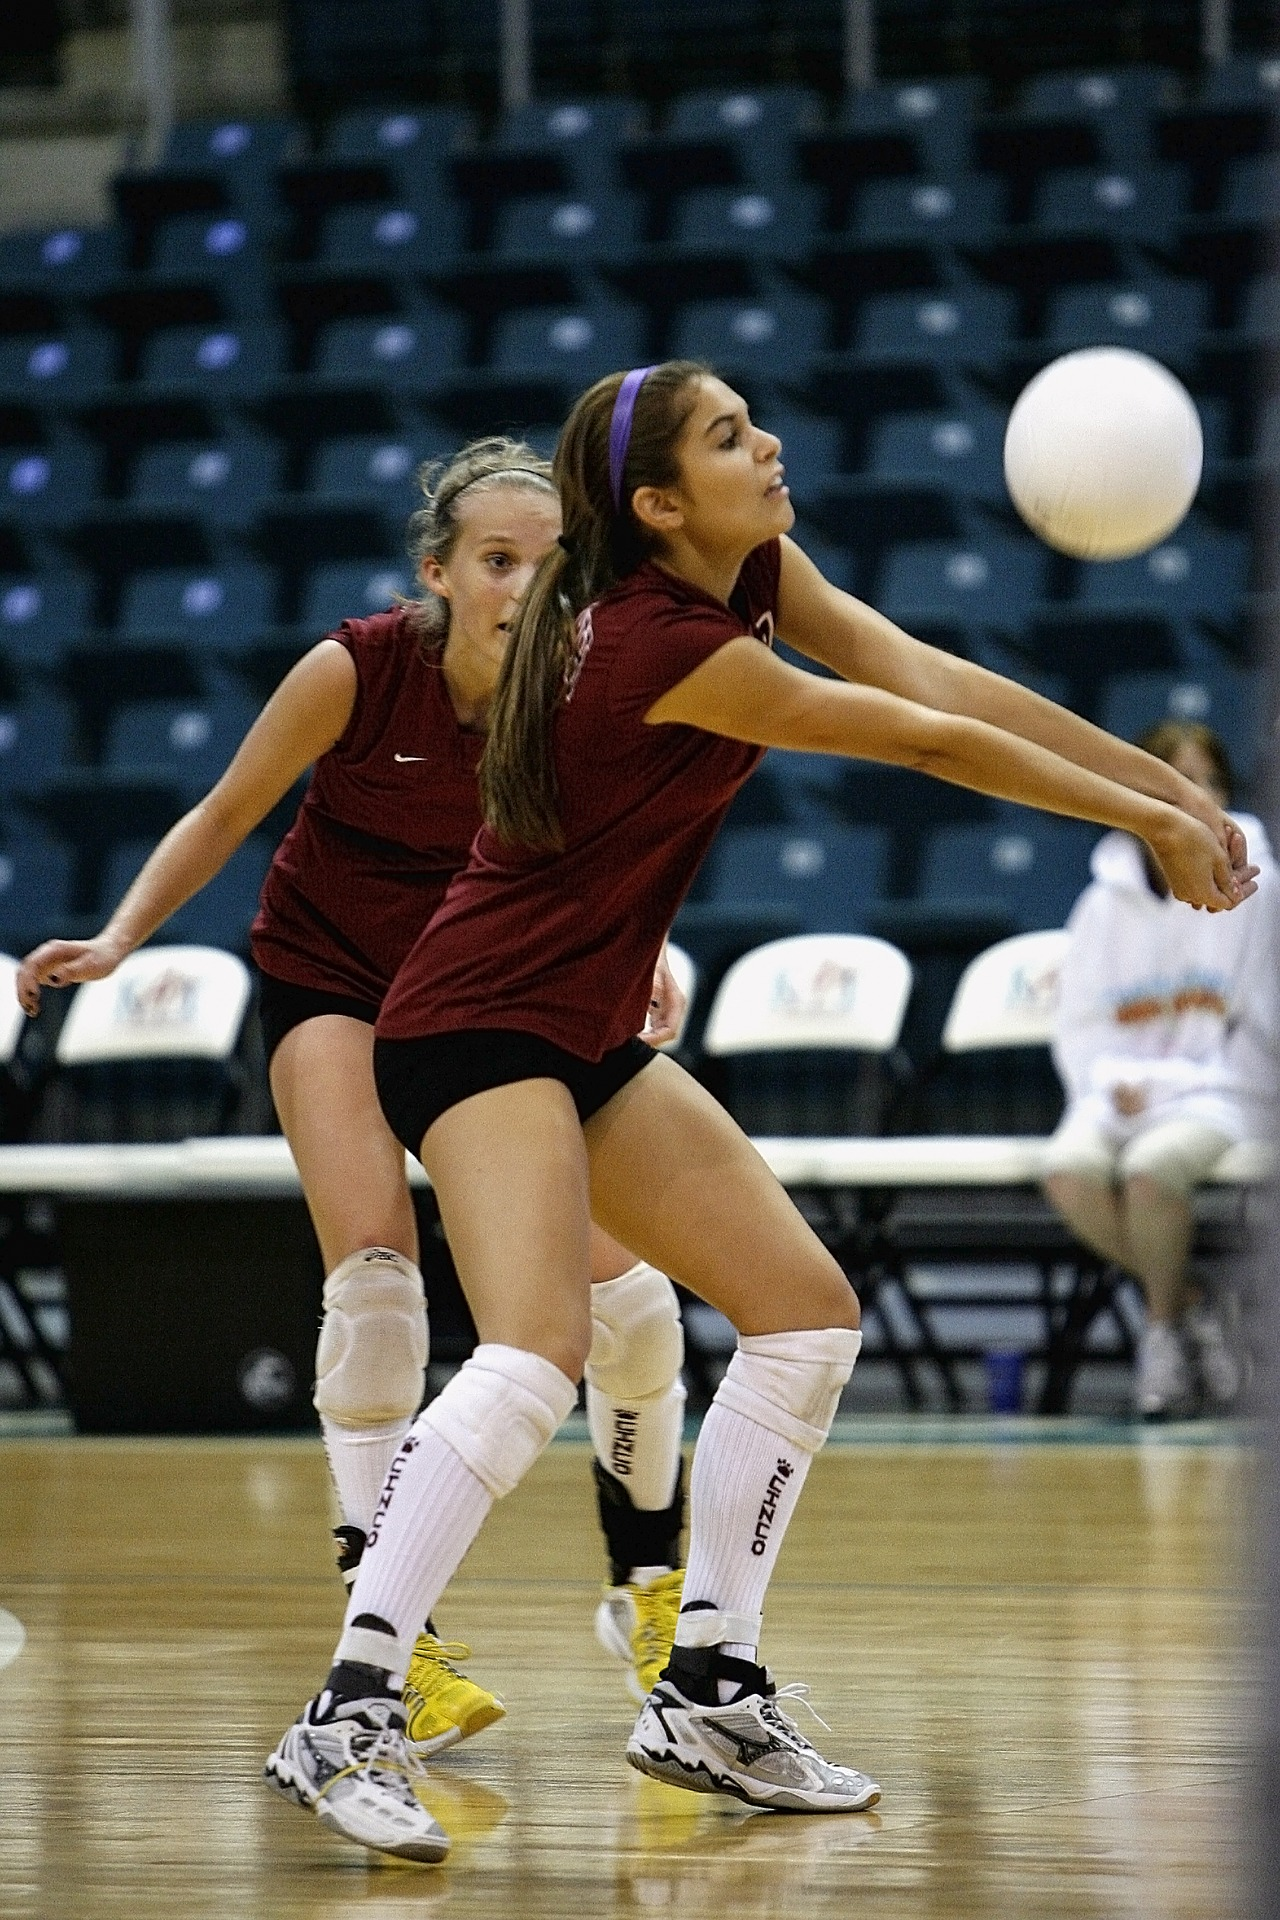 Understanding the Role of a Setter in Volleyball